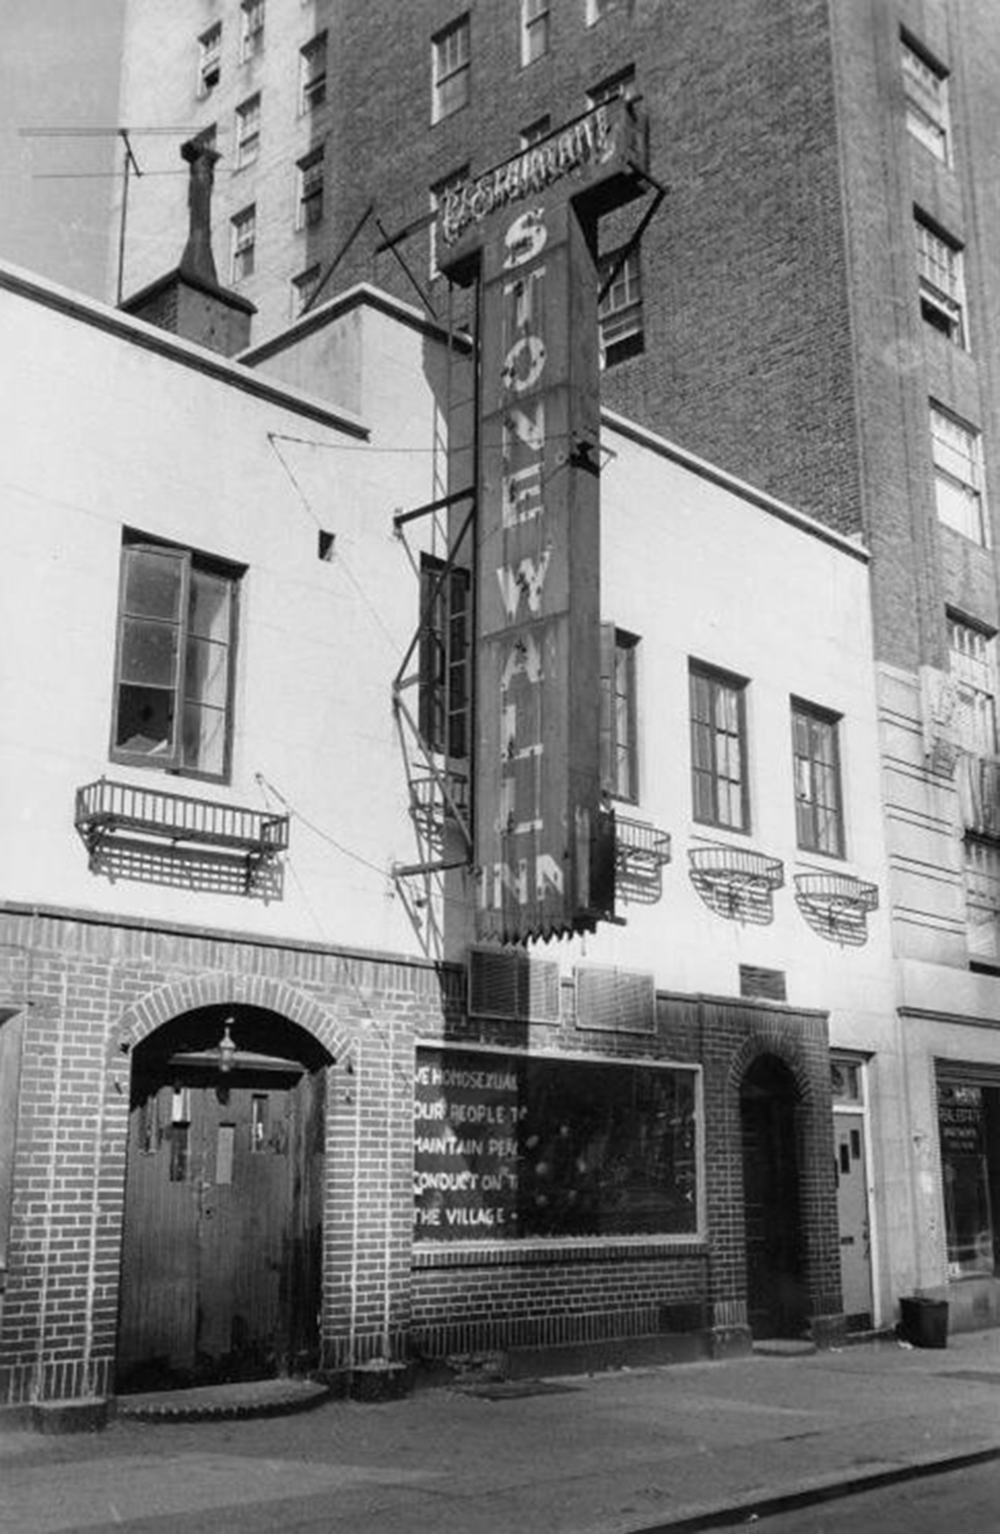 "The window under the Stonewall sign reads: ""We homosexuals plead with our people to please help maintain peaceful and quiet conduct on the streets of the Village--Mattachine."" Stonewall Inn 1969, Wikimedia, http://commons.wikimedia.org/wiki/File:Stonewall_Inn_1969.jpg."